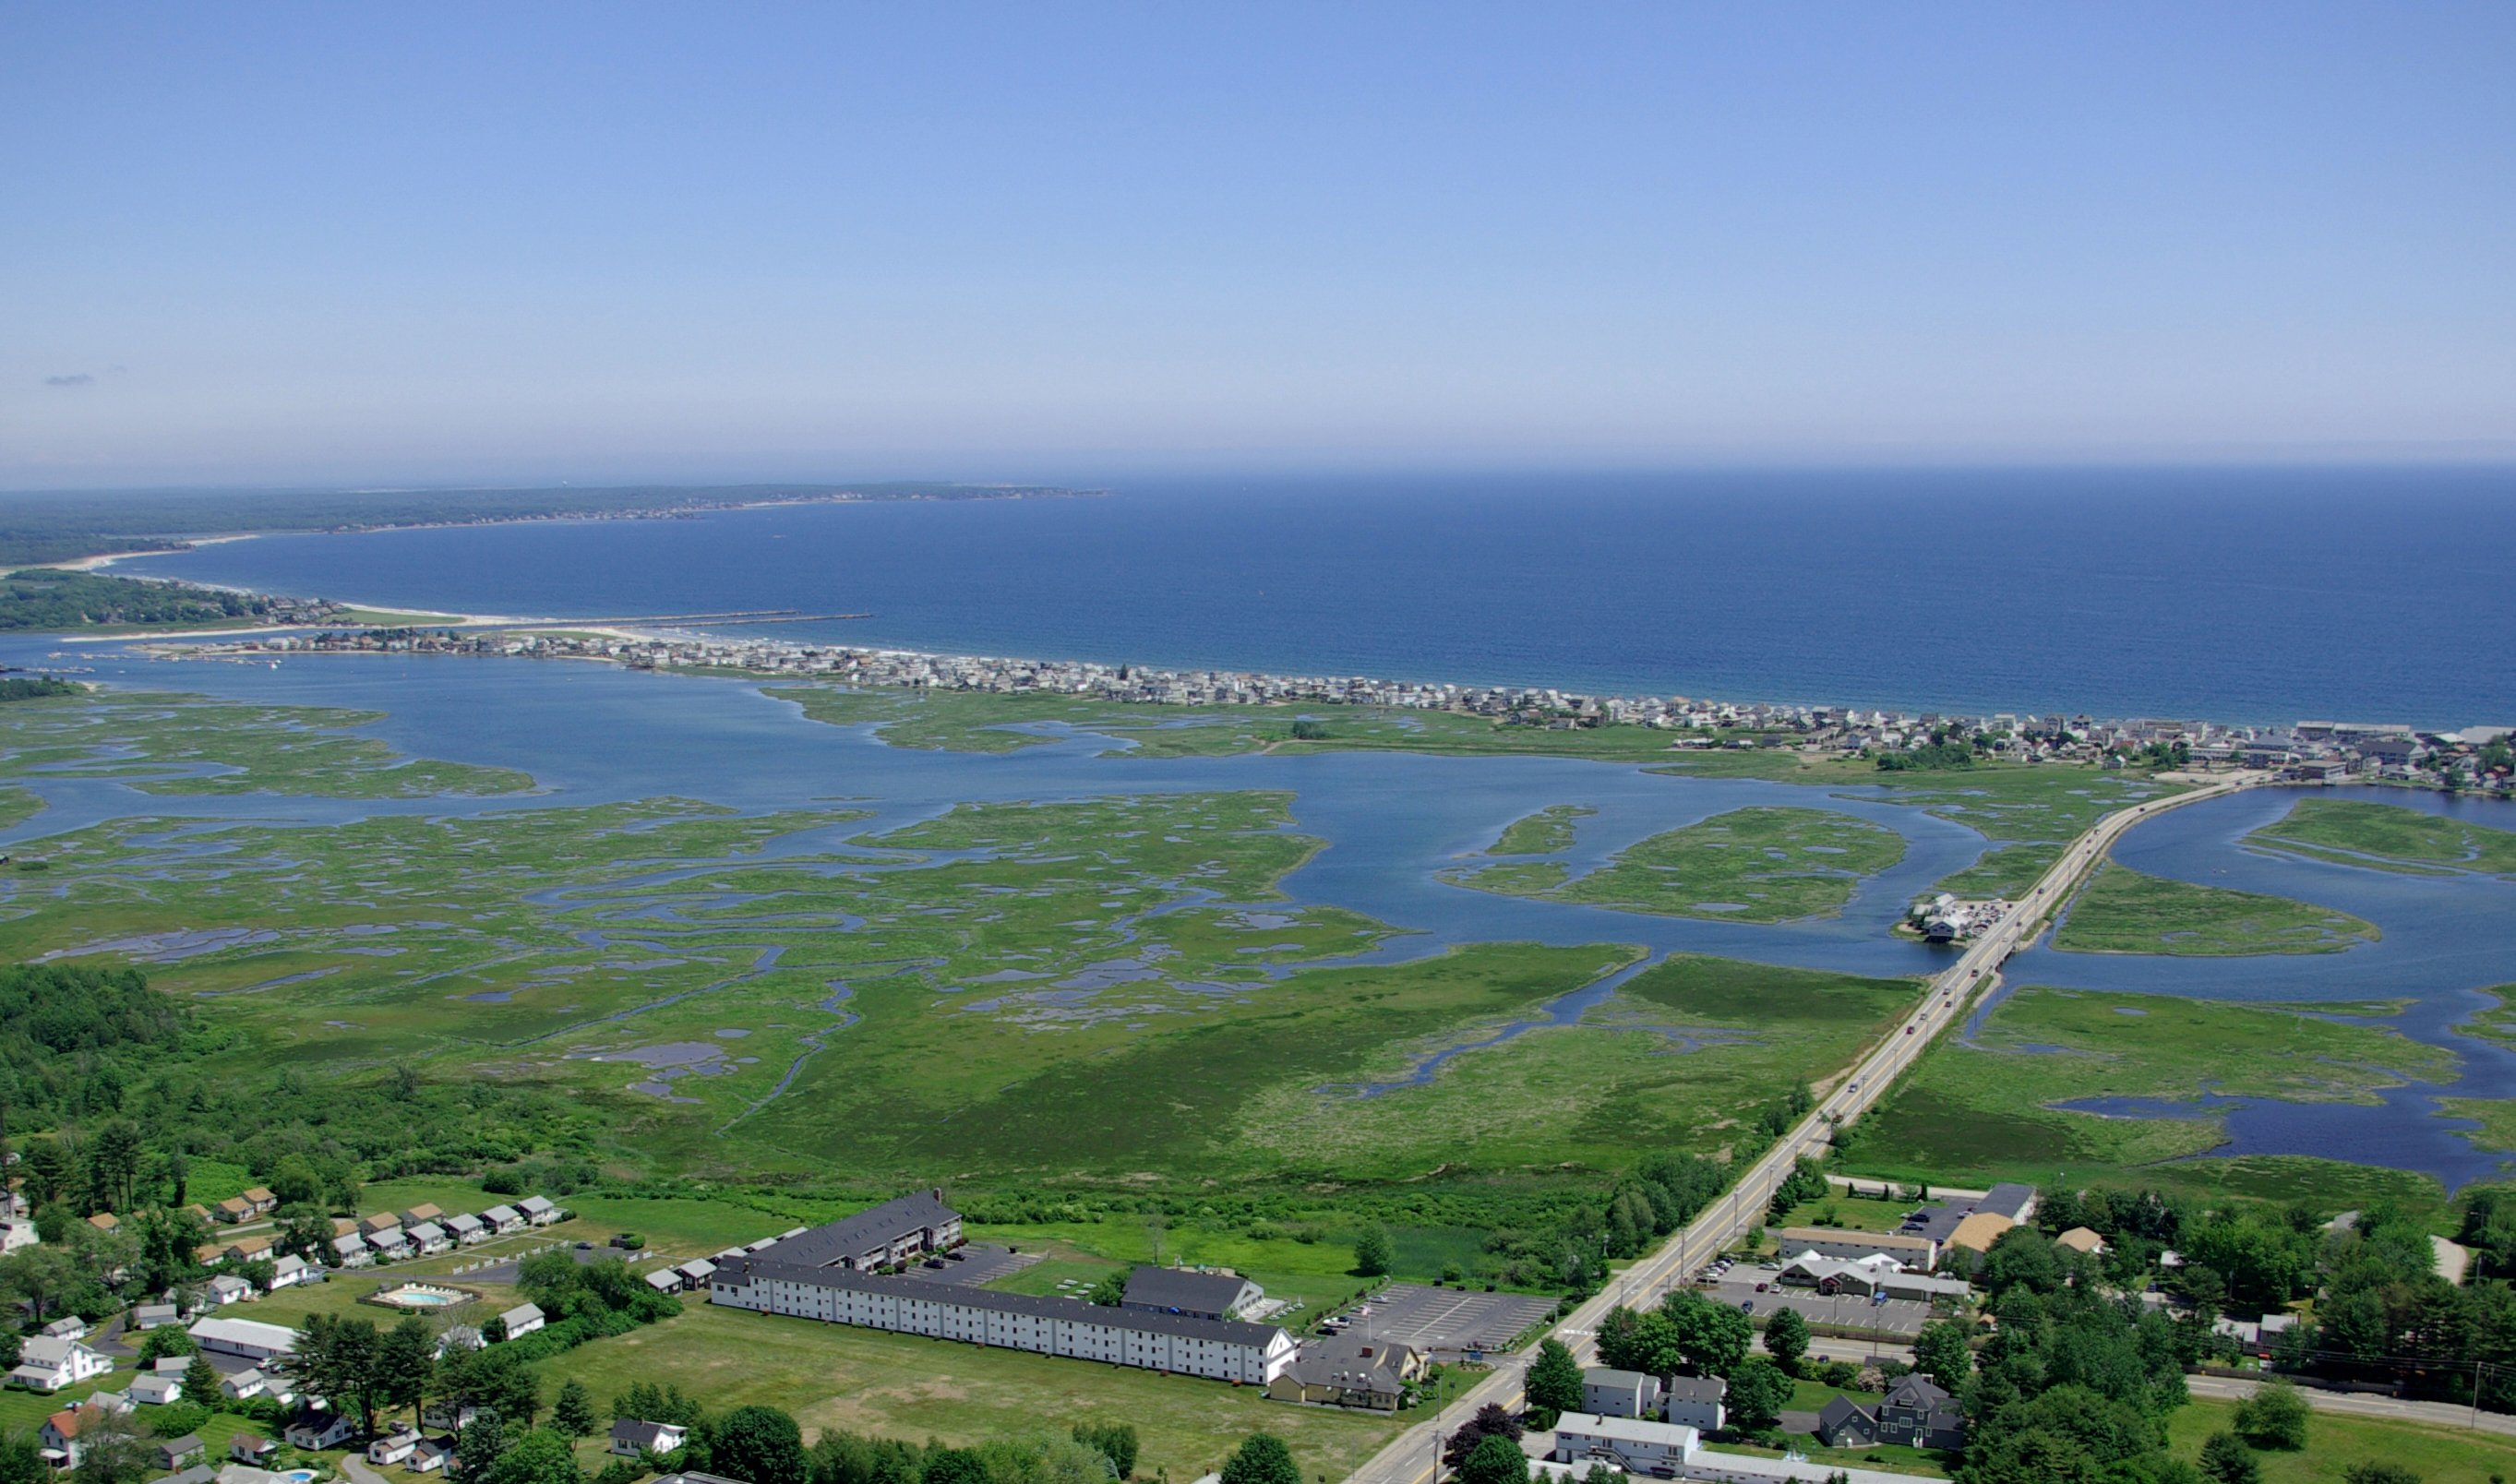 Aerial View of Misty Harbor